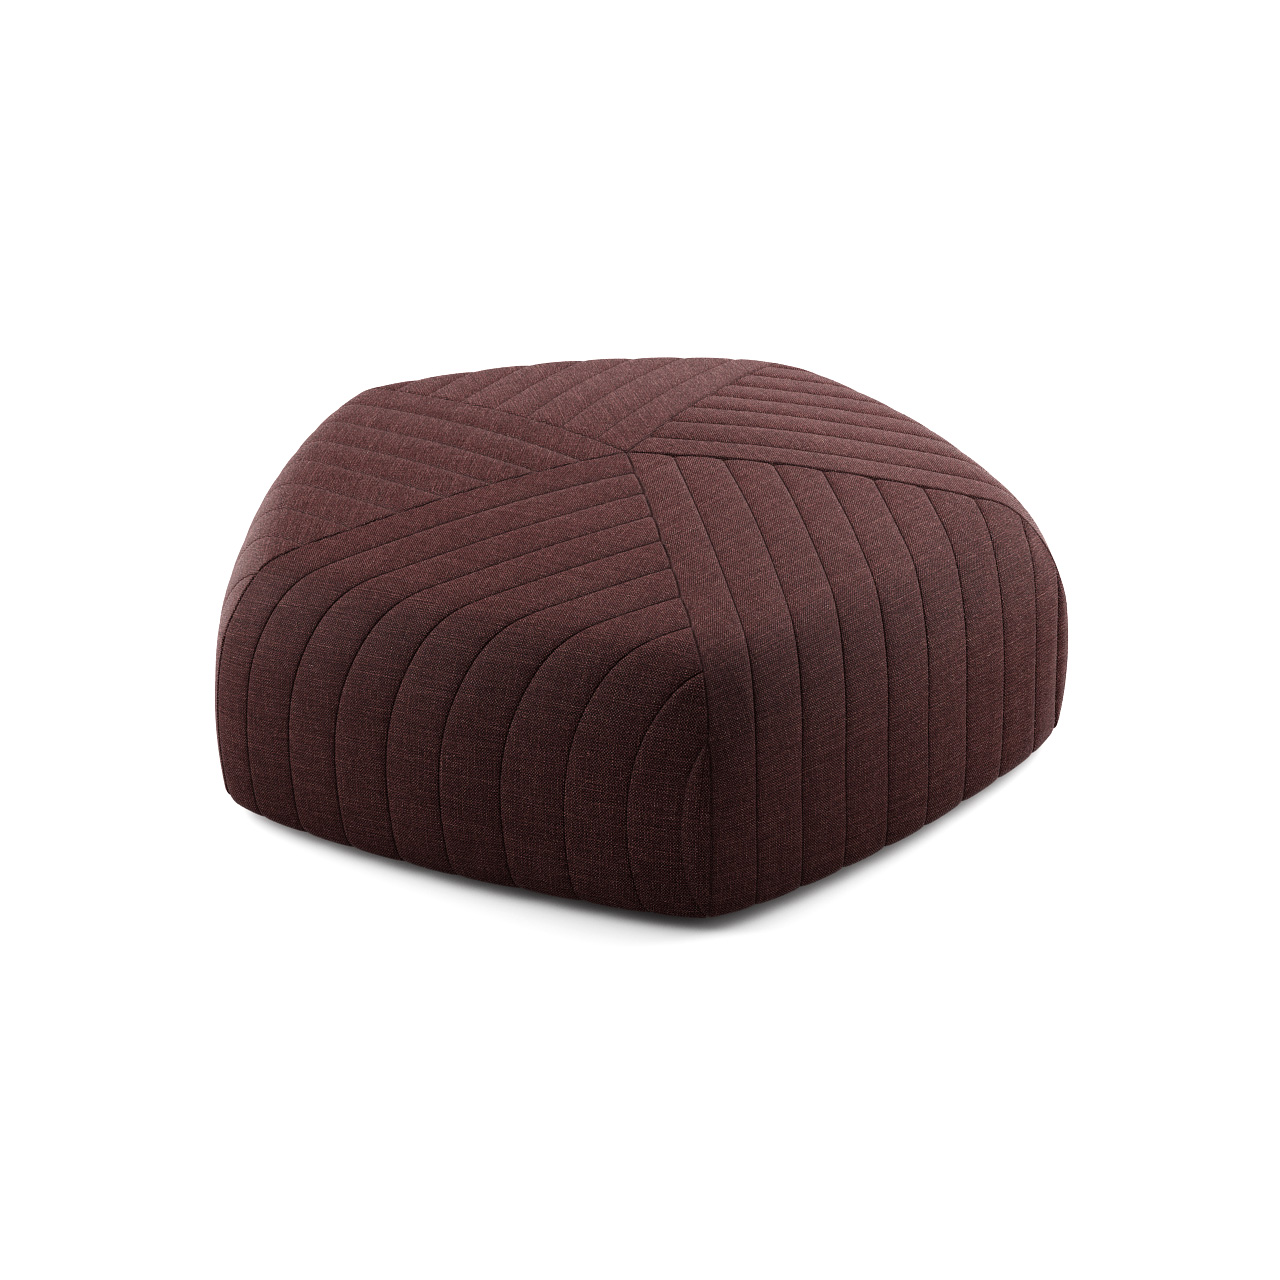 Five Pouf XL by Muuto